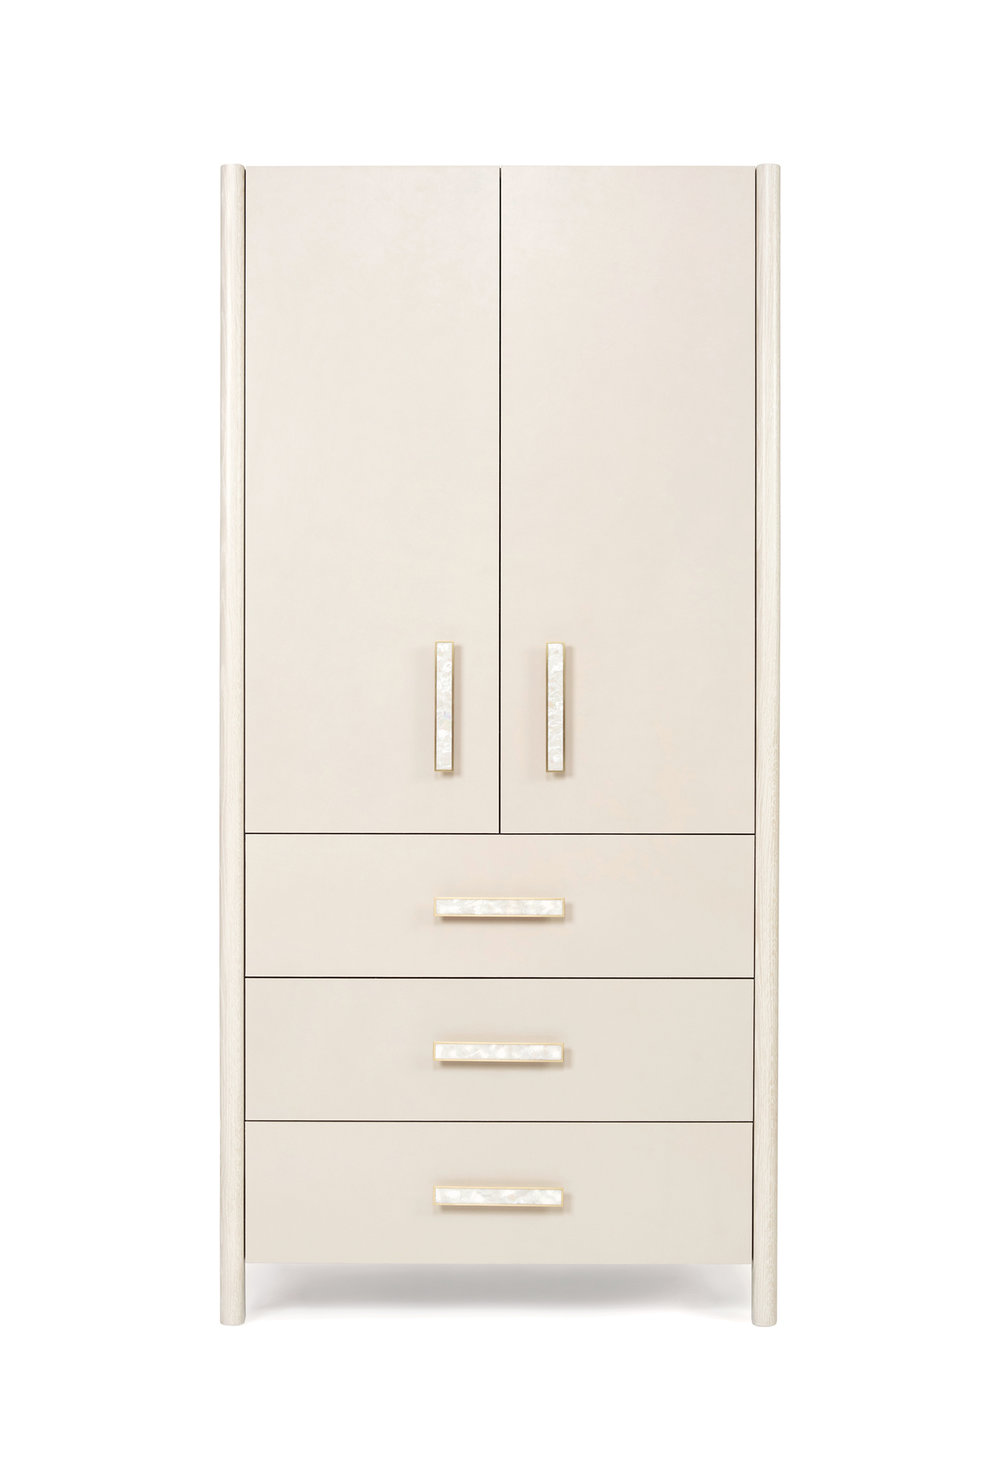 The North River armoire in bleached oak, leather doors and drawer fronts with brass pulls inlaid in mother of pearl